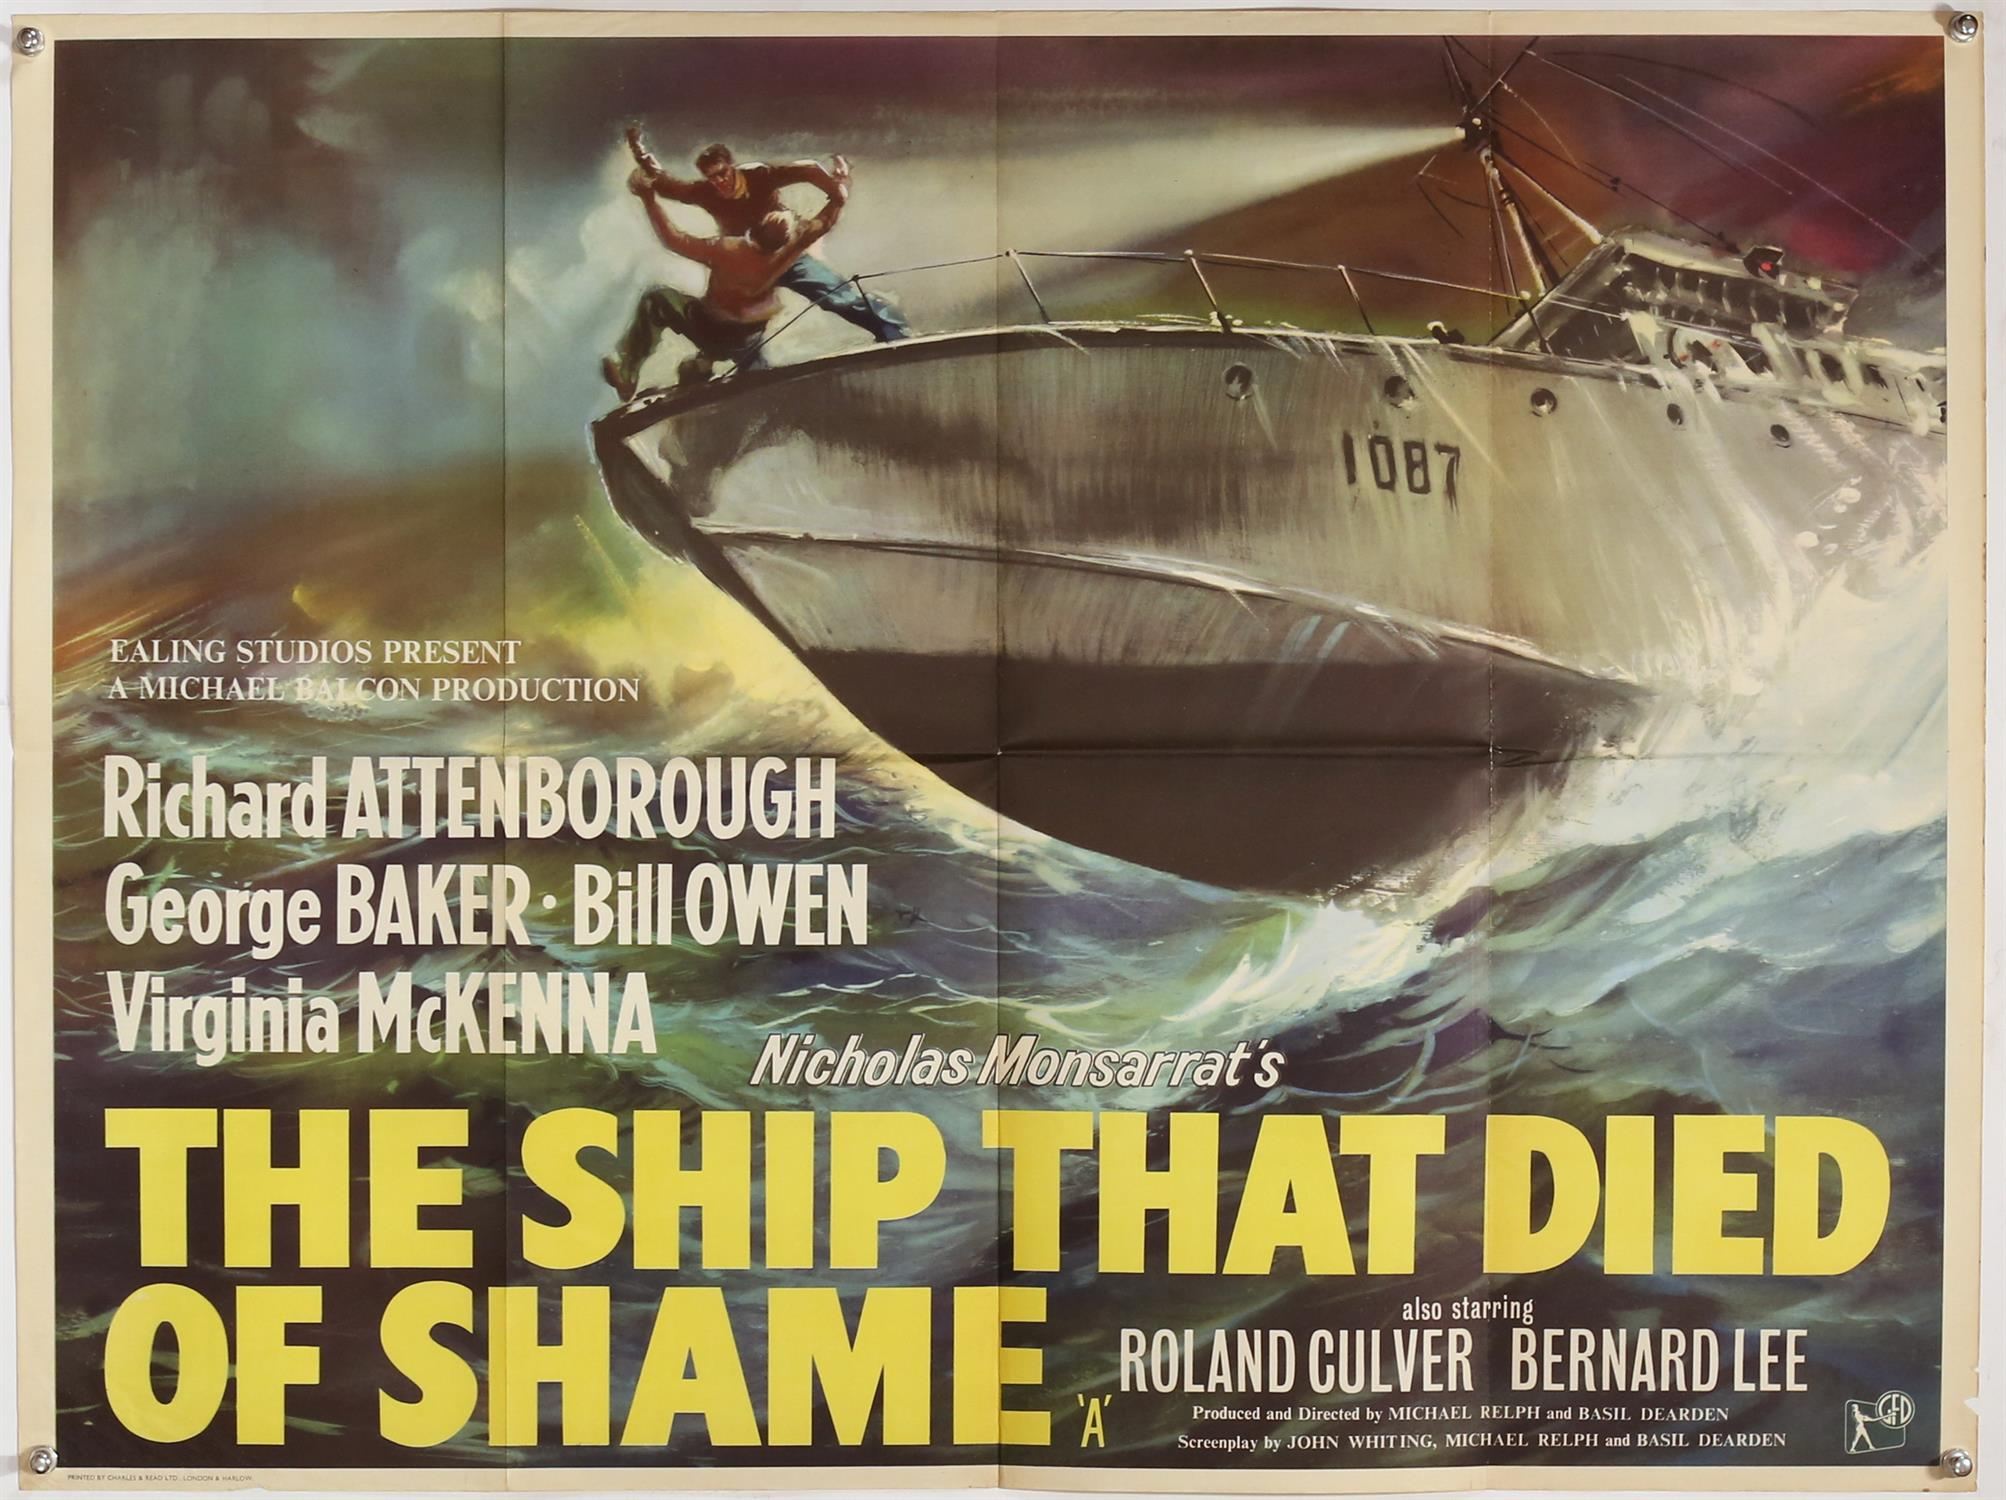 The Ship That Died of Shame (1955) British Quad film poster, Ealing Studios, folded, 30 x 40 inches.